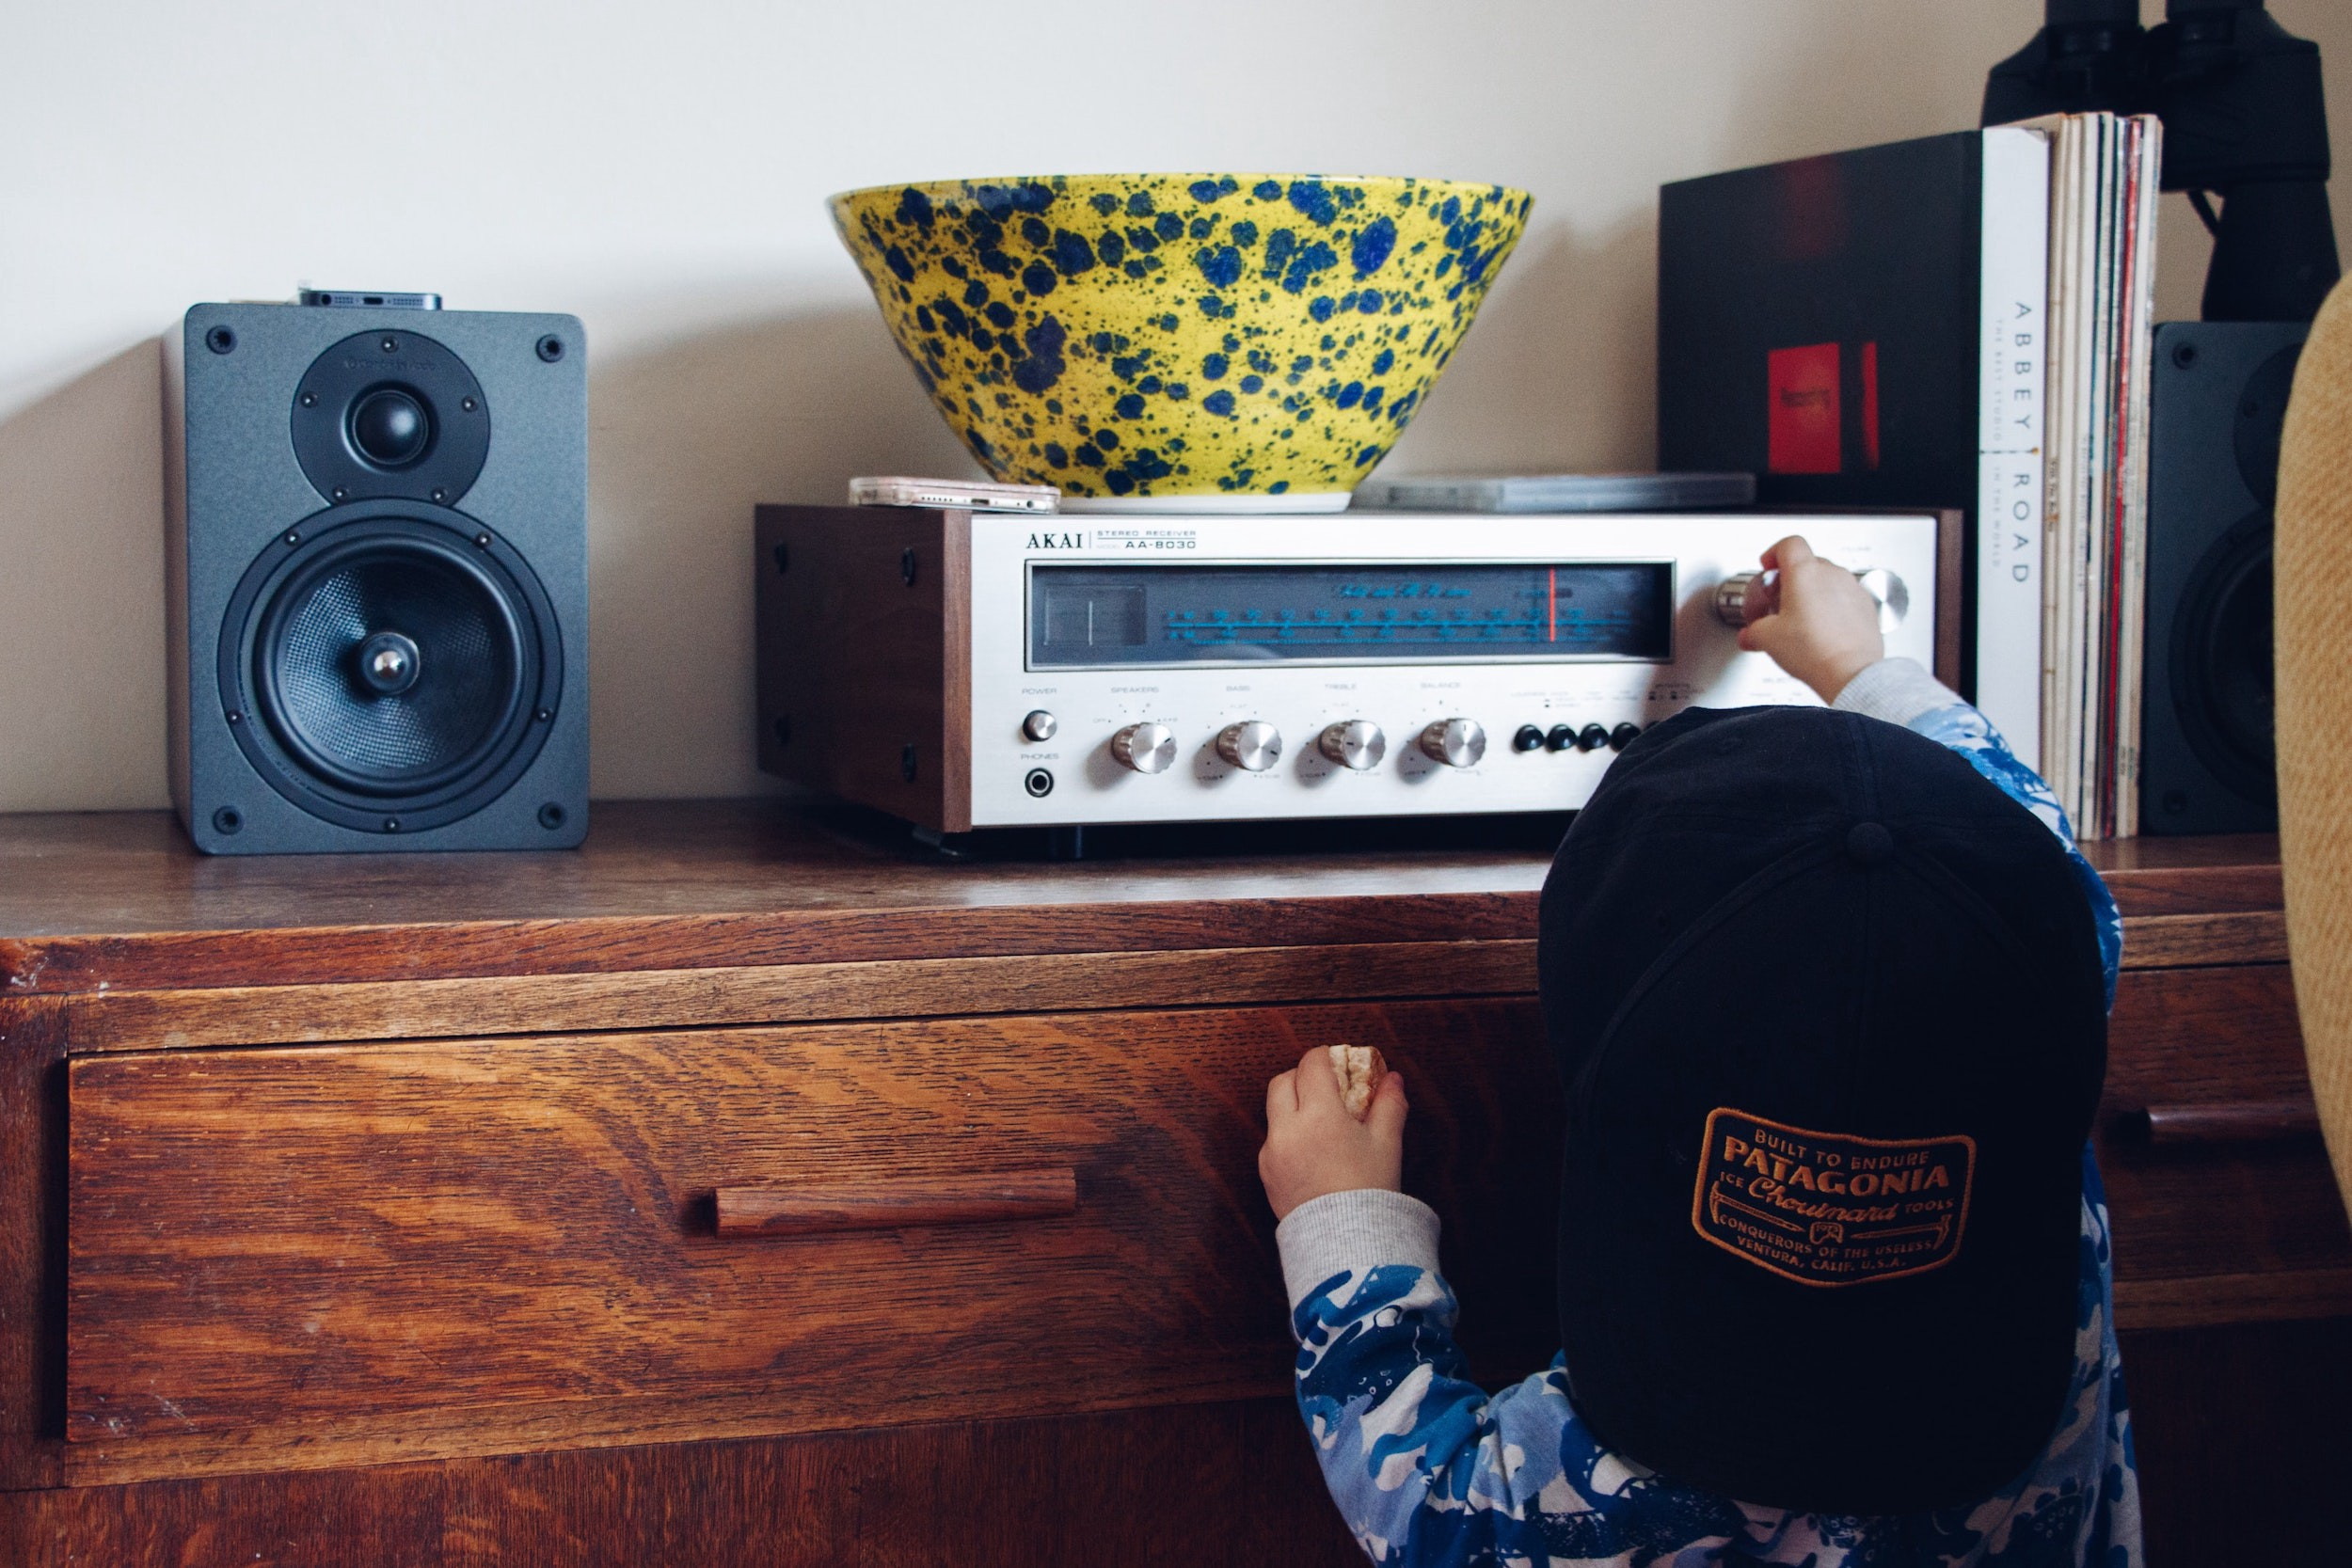 Toddler adjusts dial on classic radio